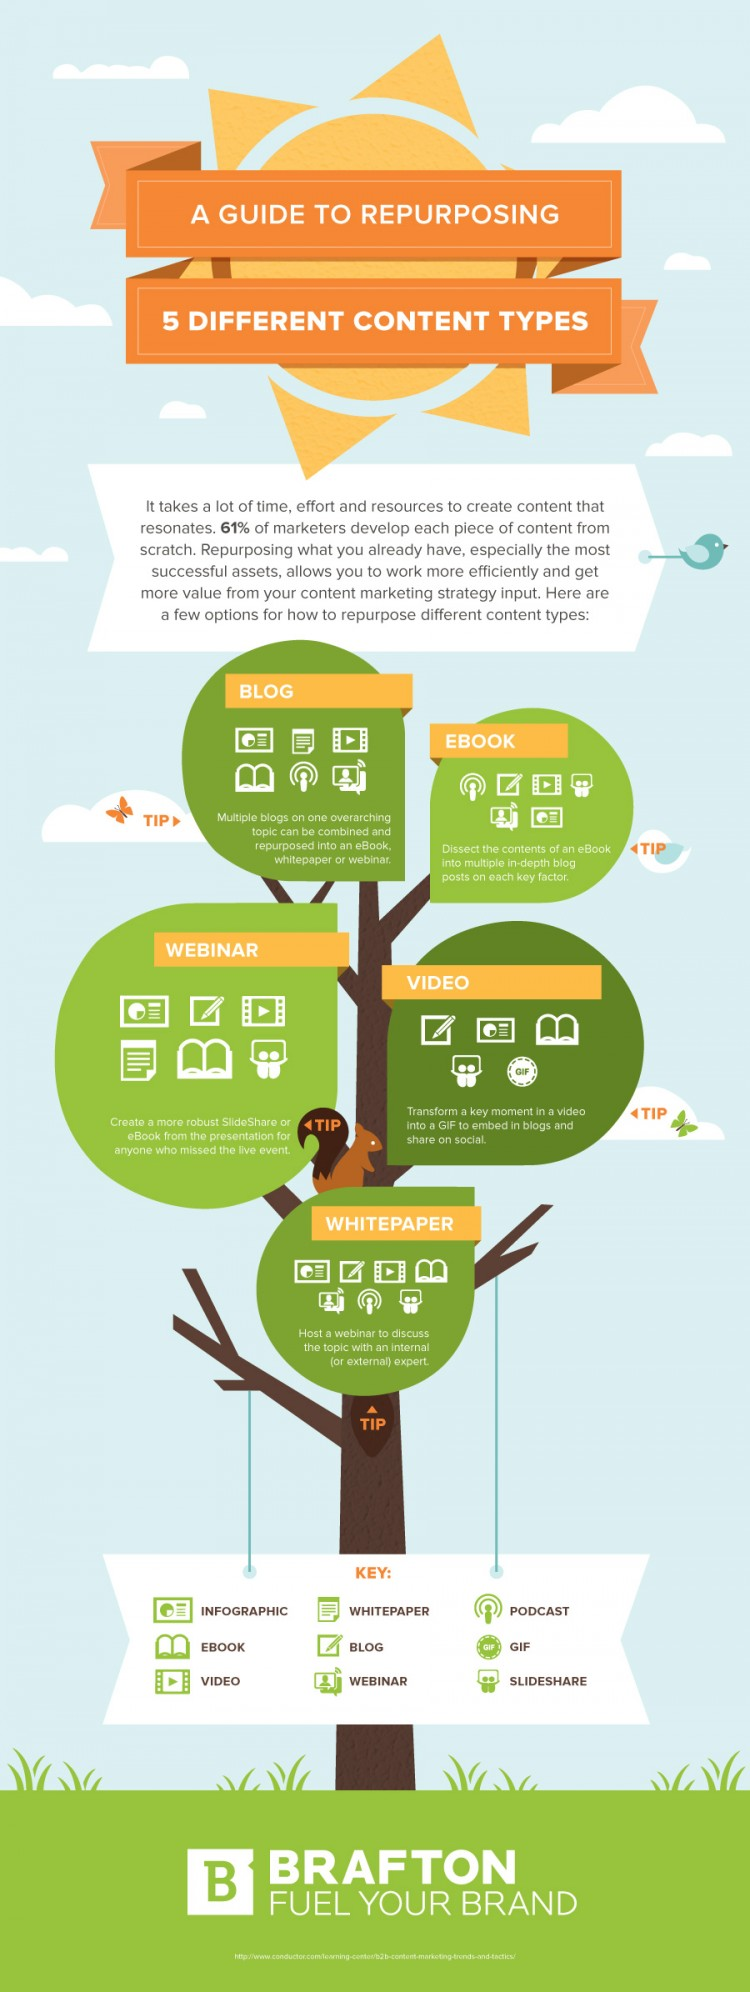 This infographic illustrates the various ways options you have to repurpose five different types of content.